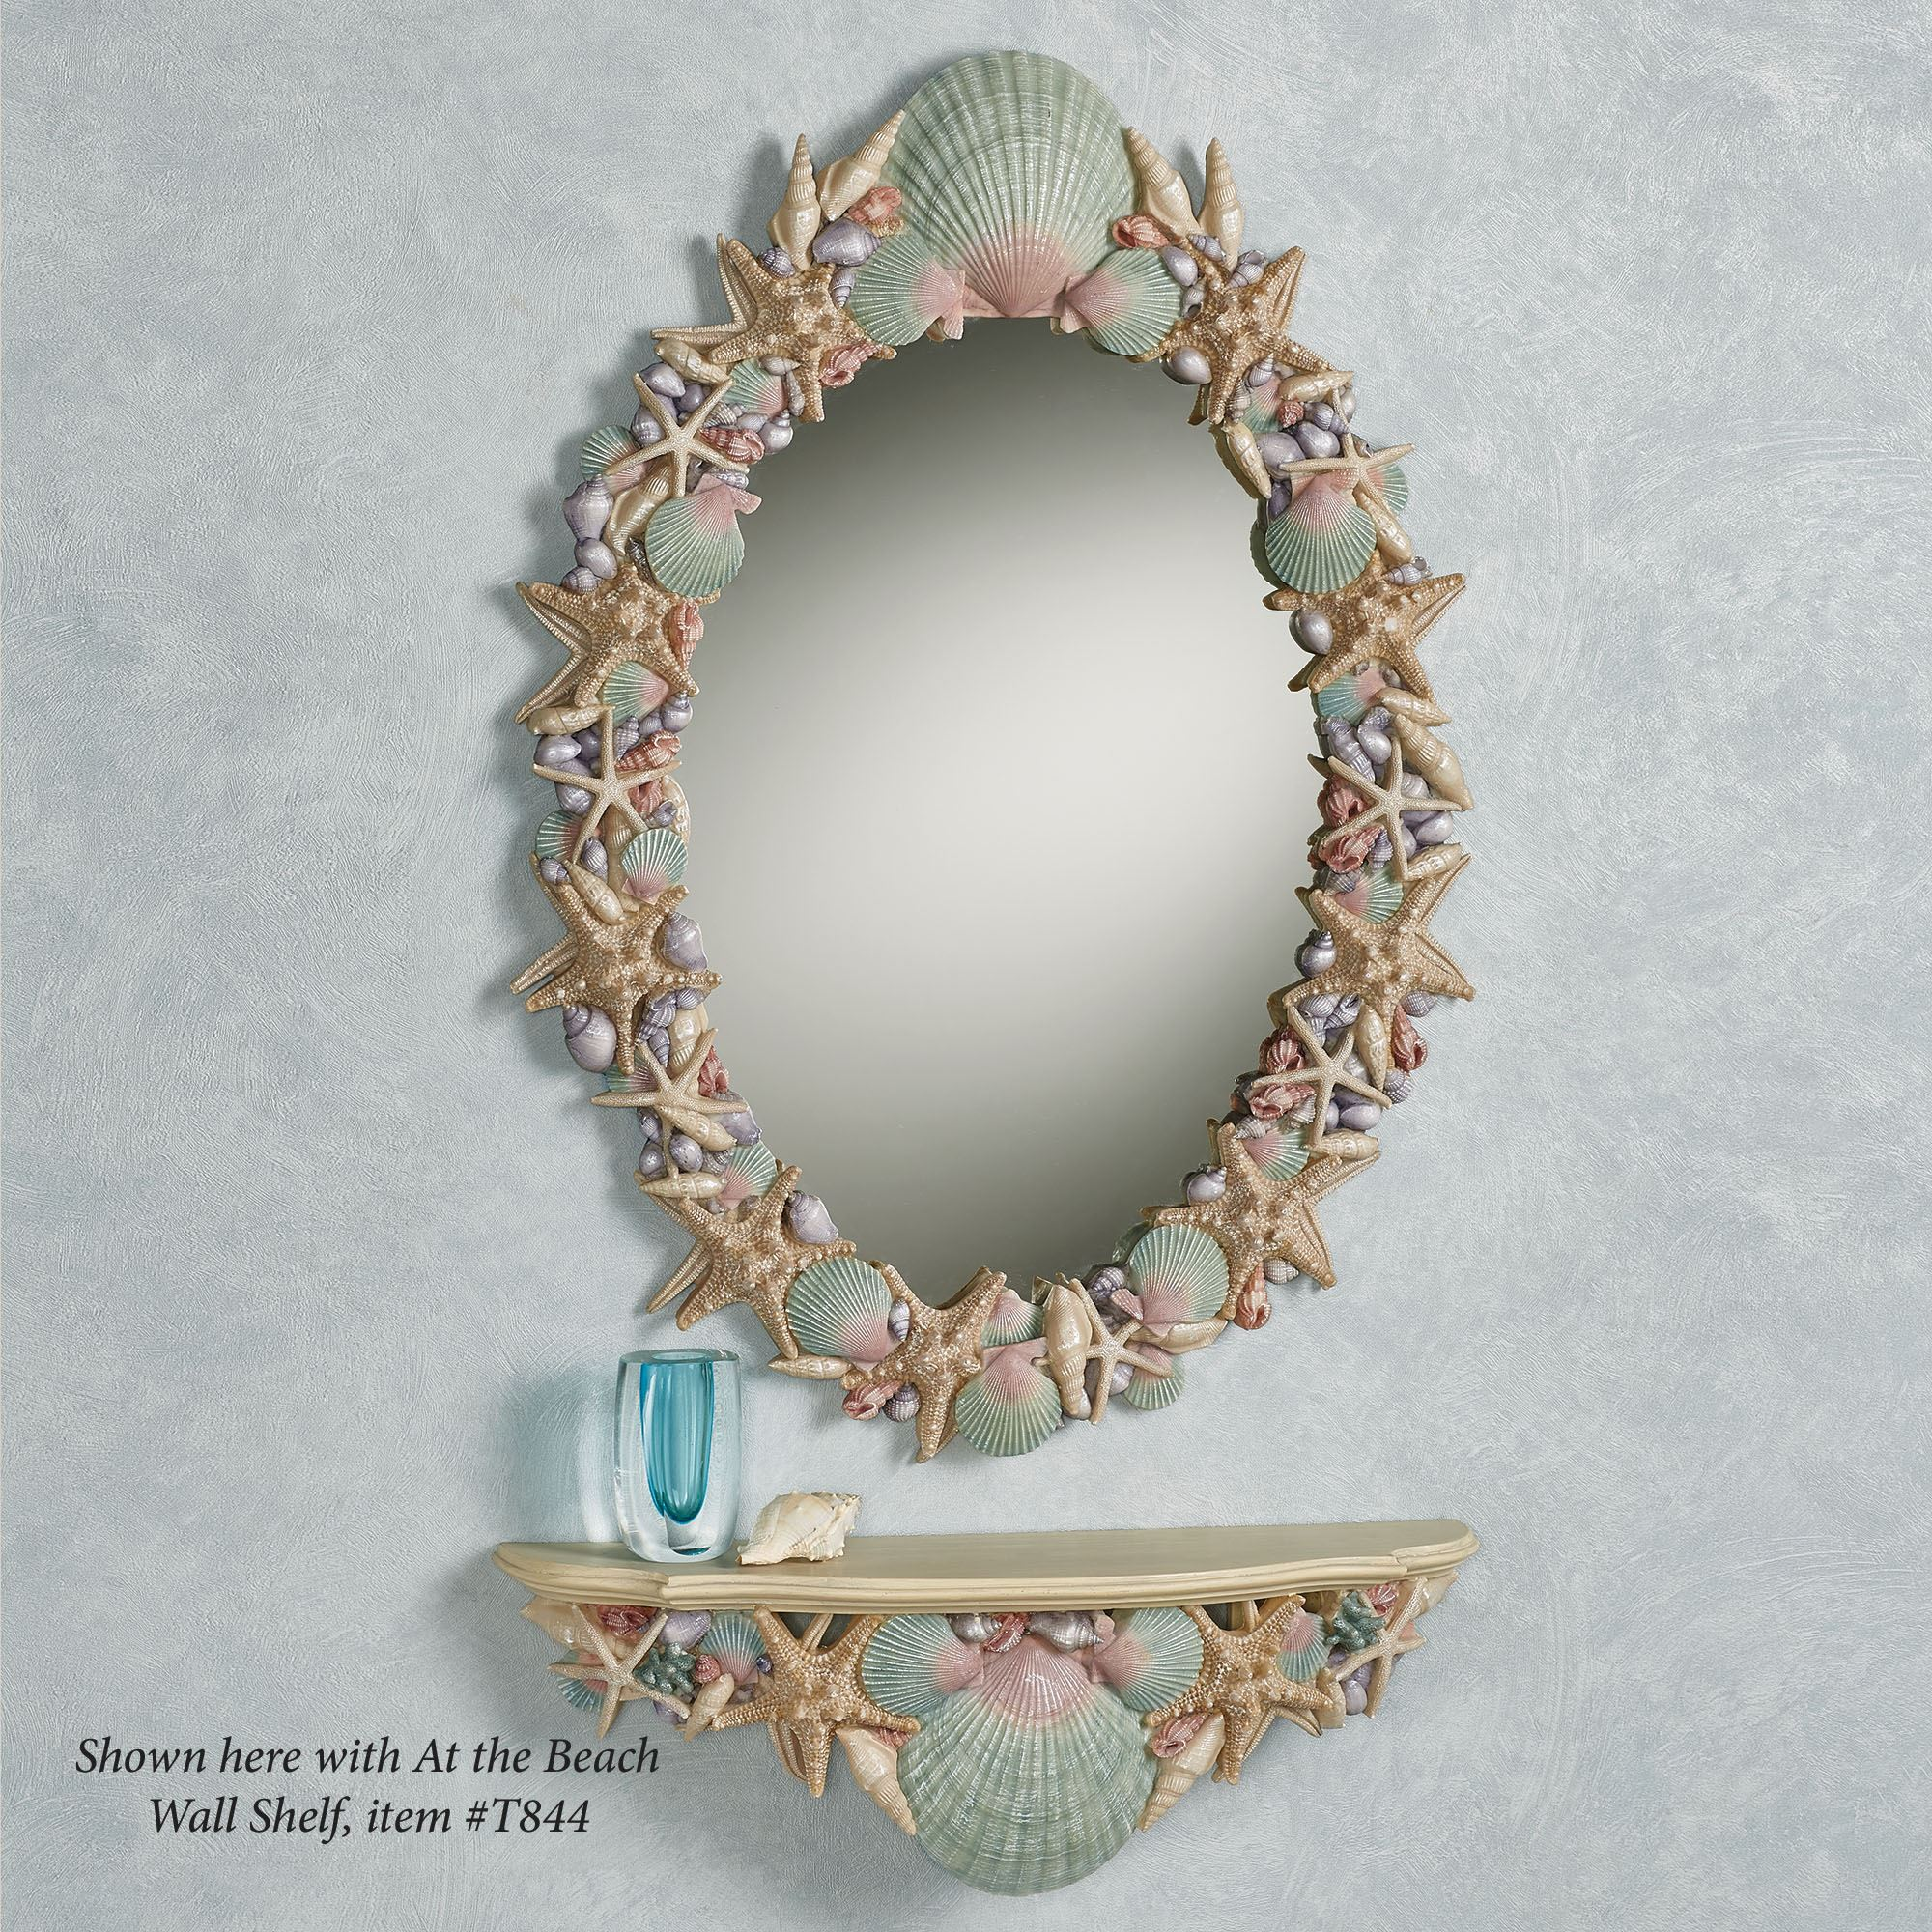 Coastal wall decor touch of class at the beach natural hued seashell wall mirror amipublicfo Choice Image